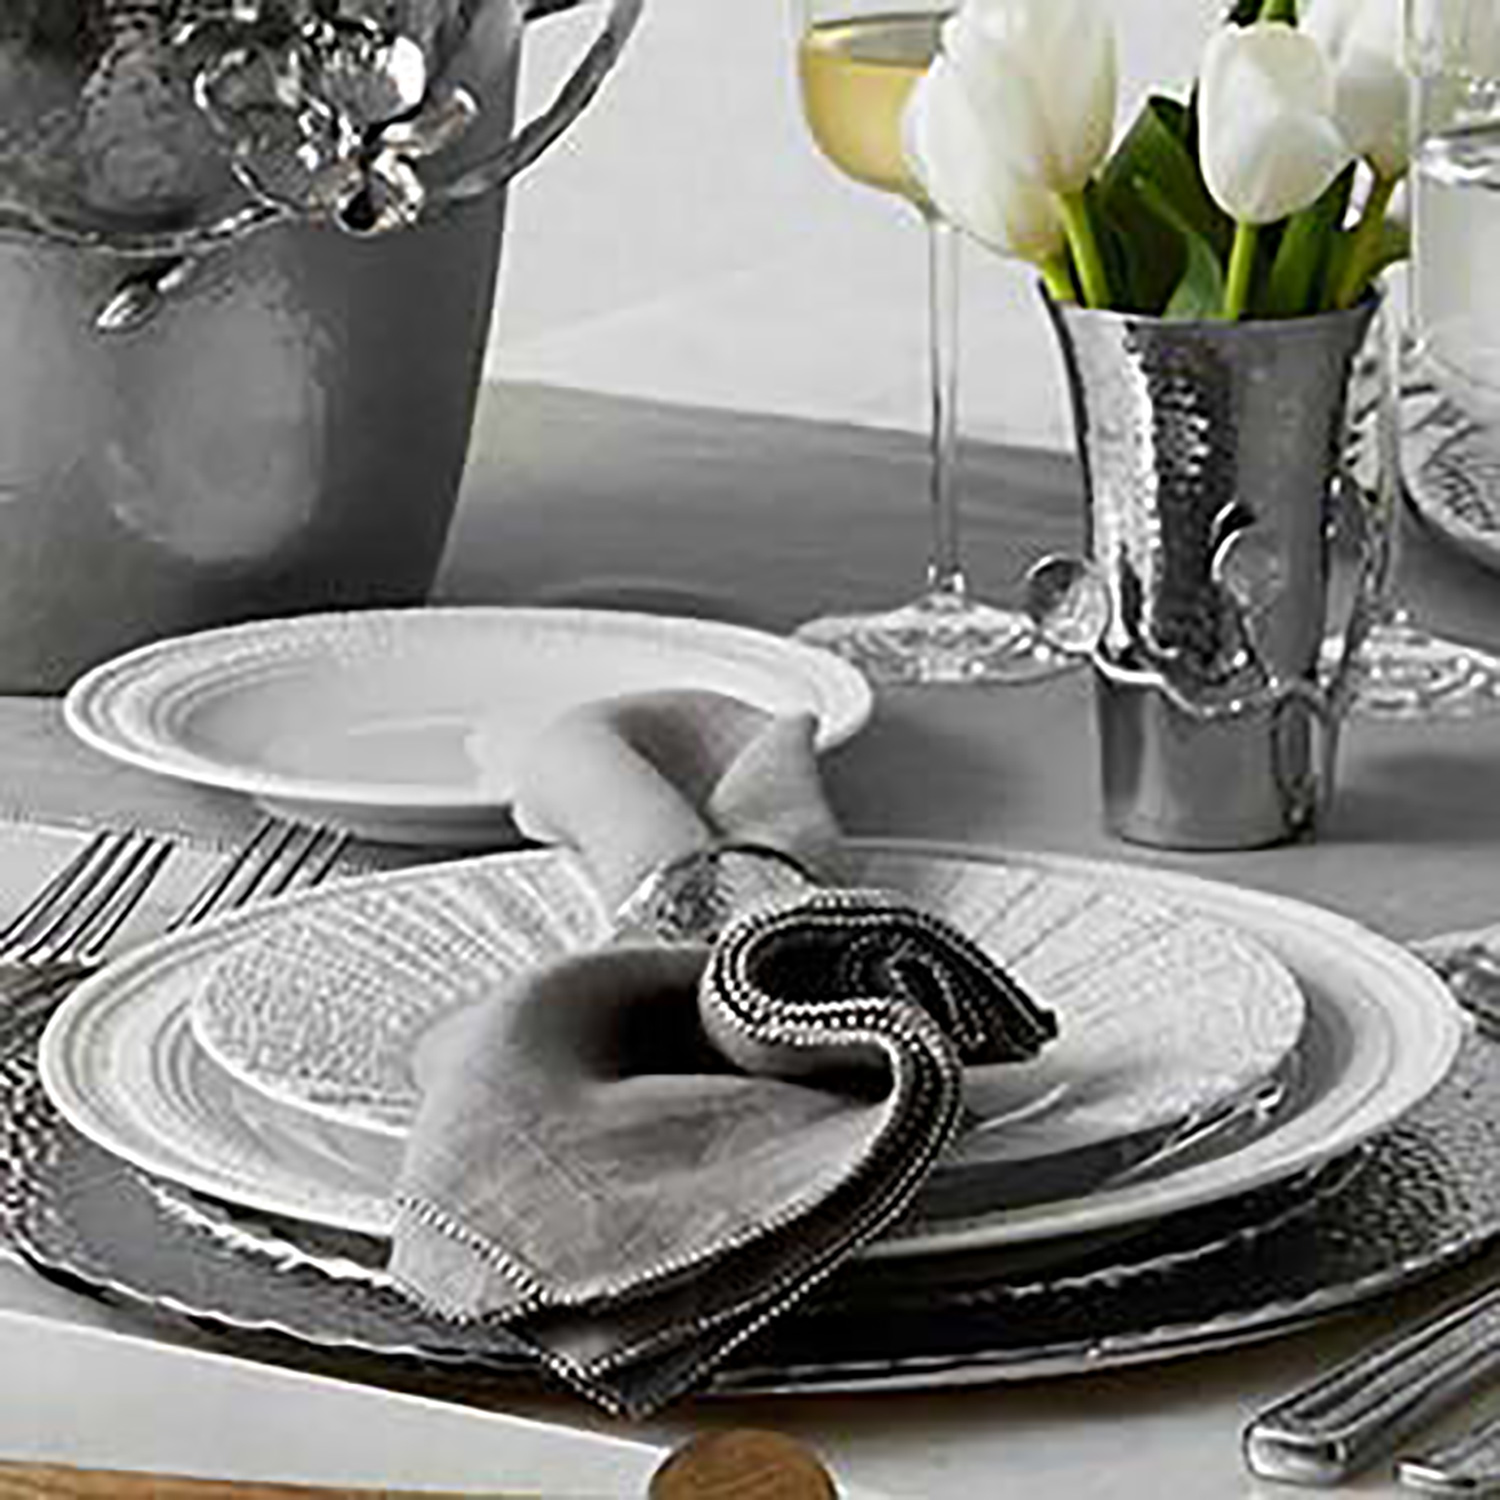 3 Piece Place Setting - White